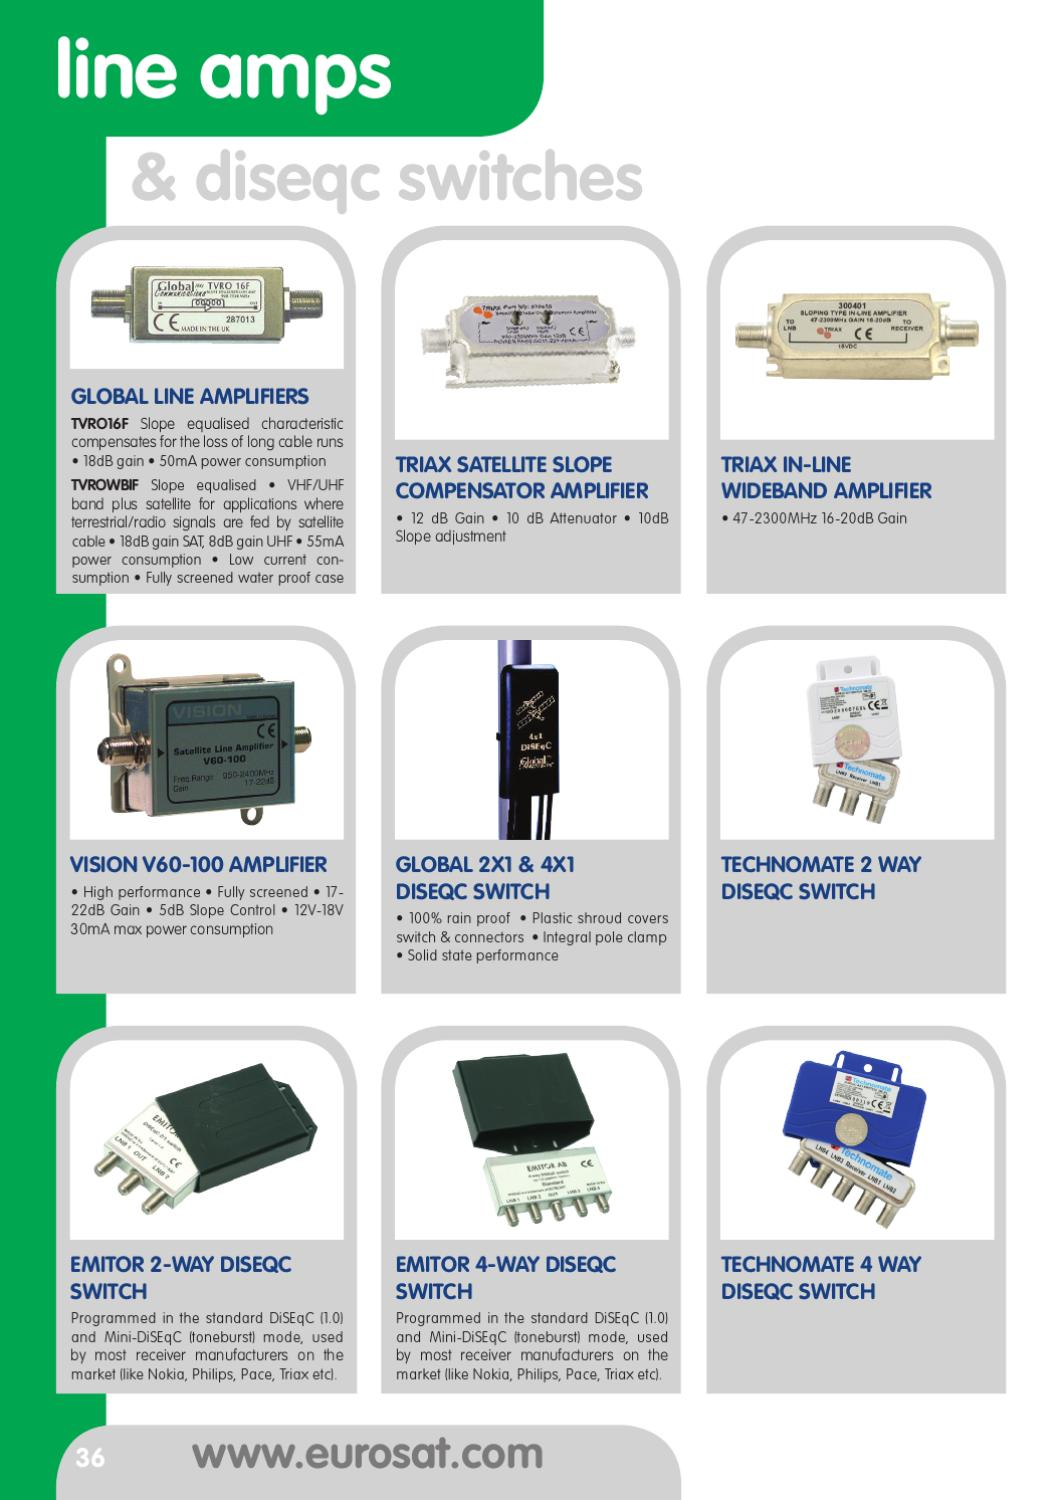 2011 Eurosat Product Guide By Issuu 2 Way Satellite Switch